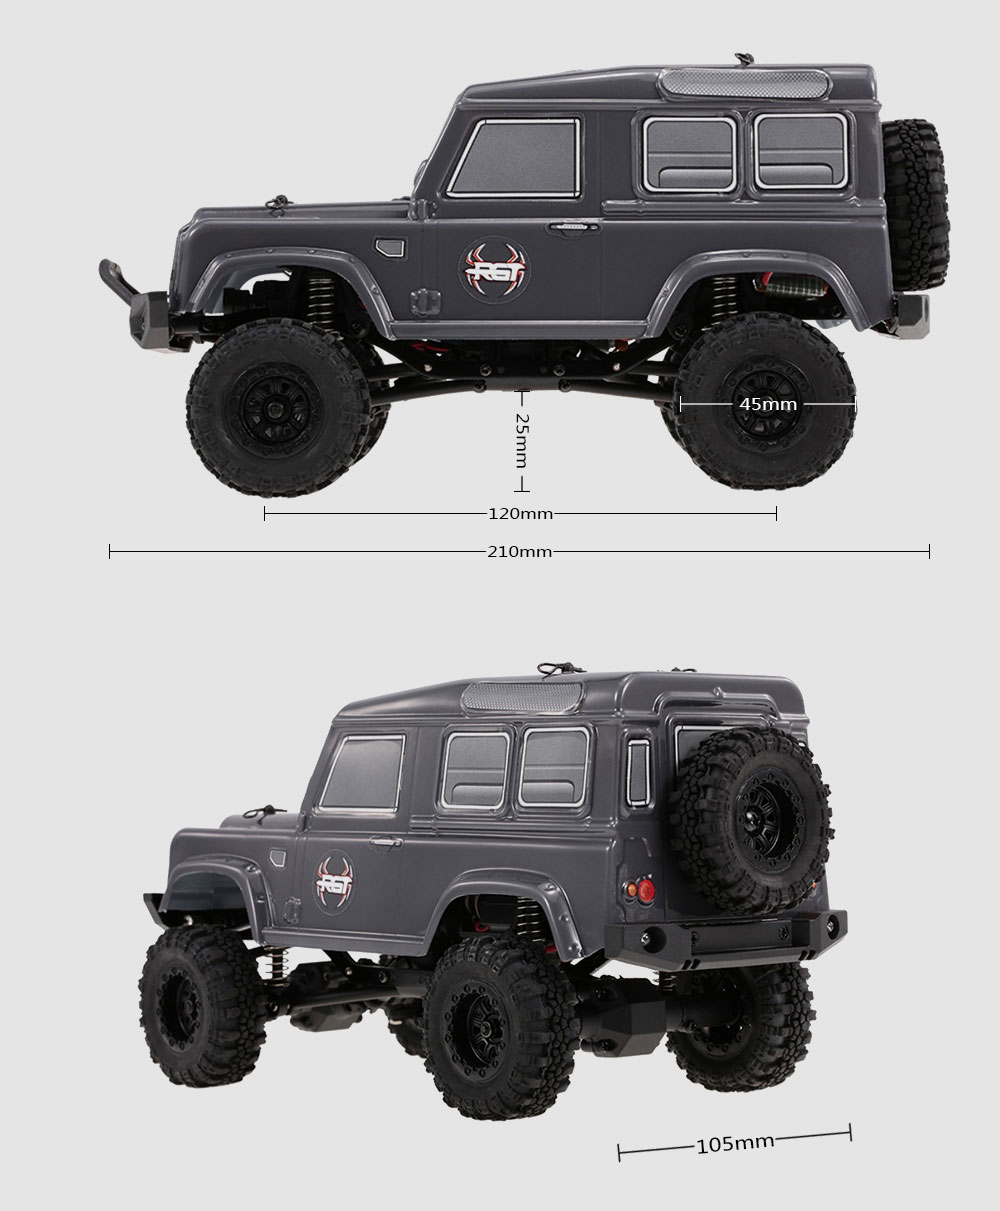 RGT 1/24 2.4G 4WD 15km/h RC Crawler Off-road Car - Carbon Gray Single battery version